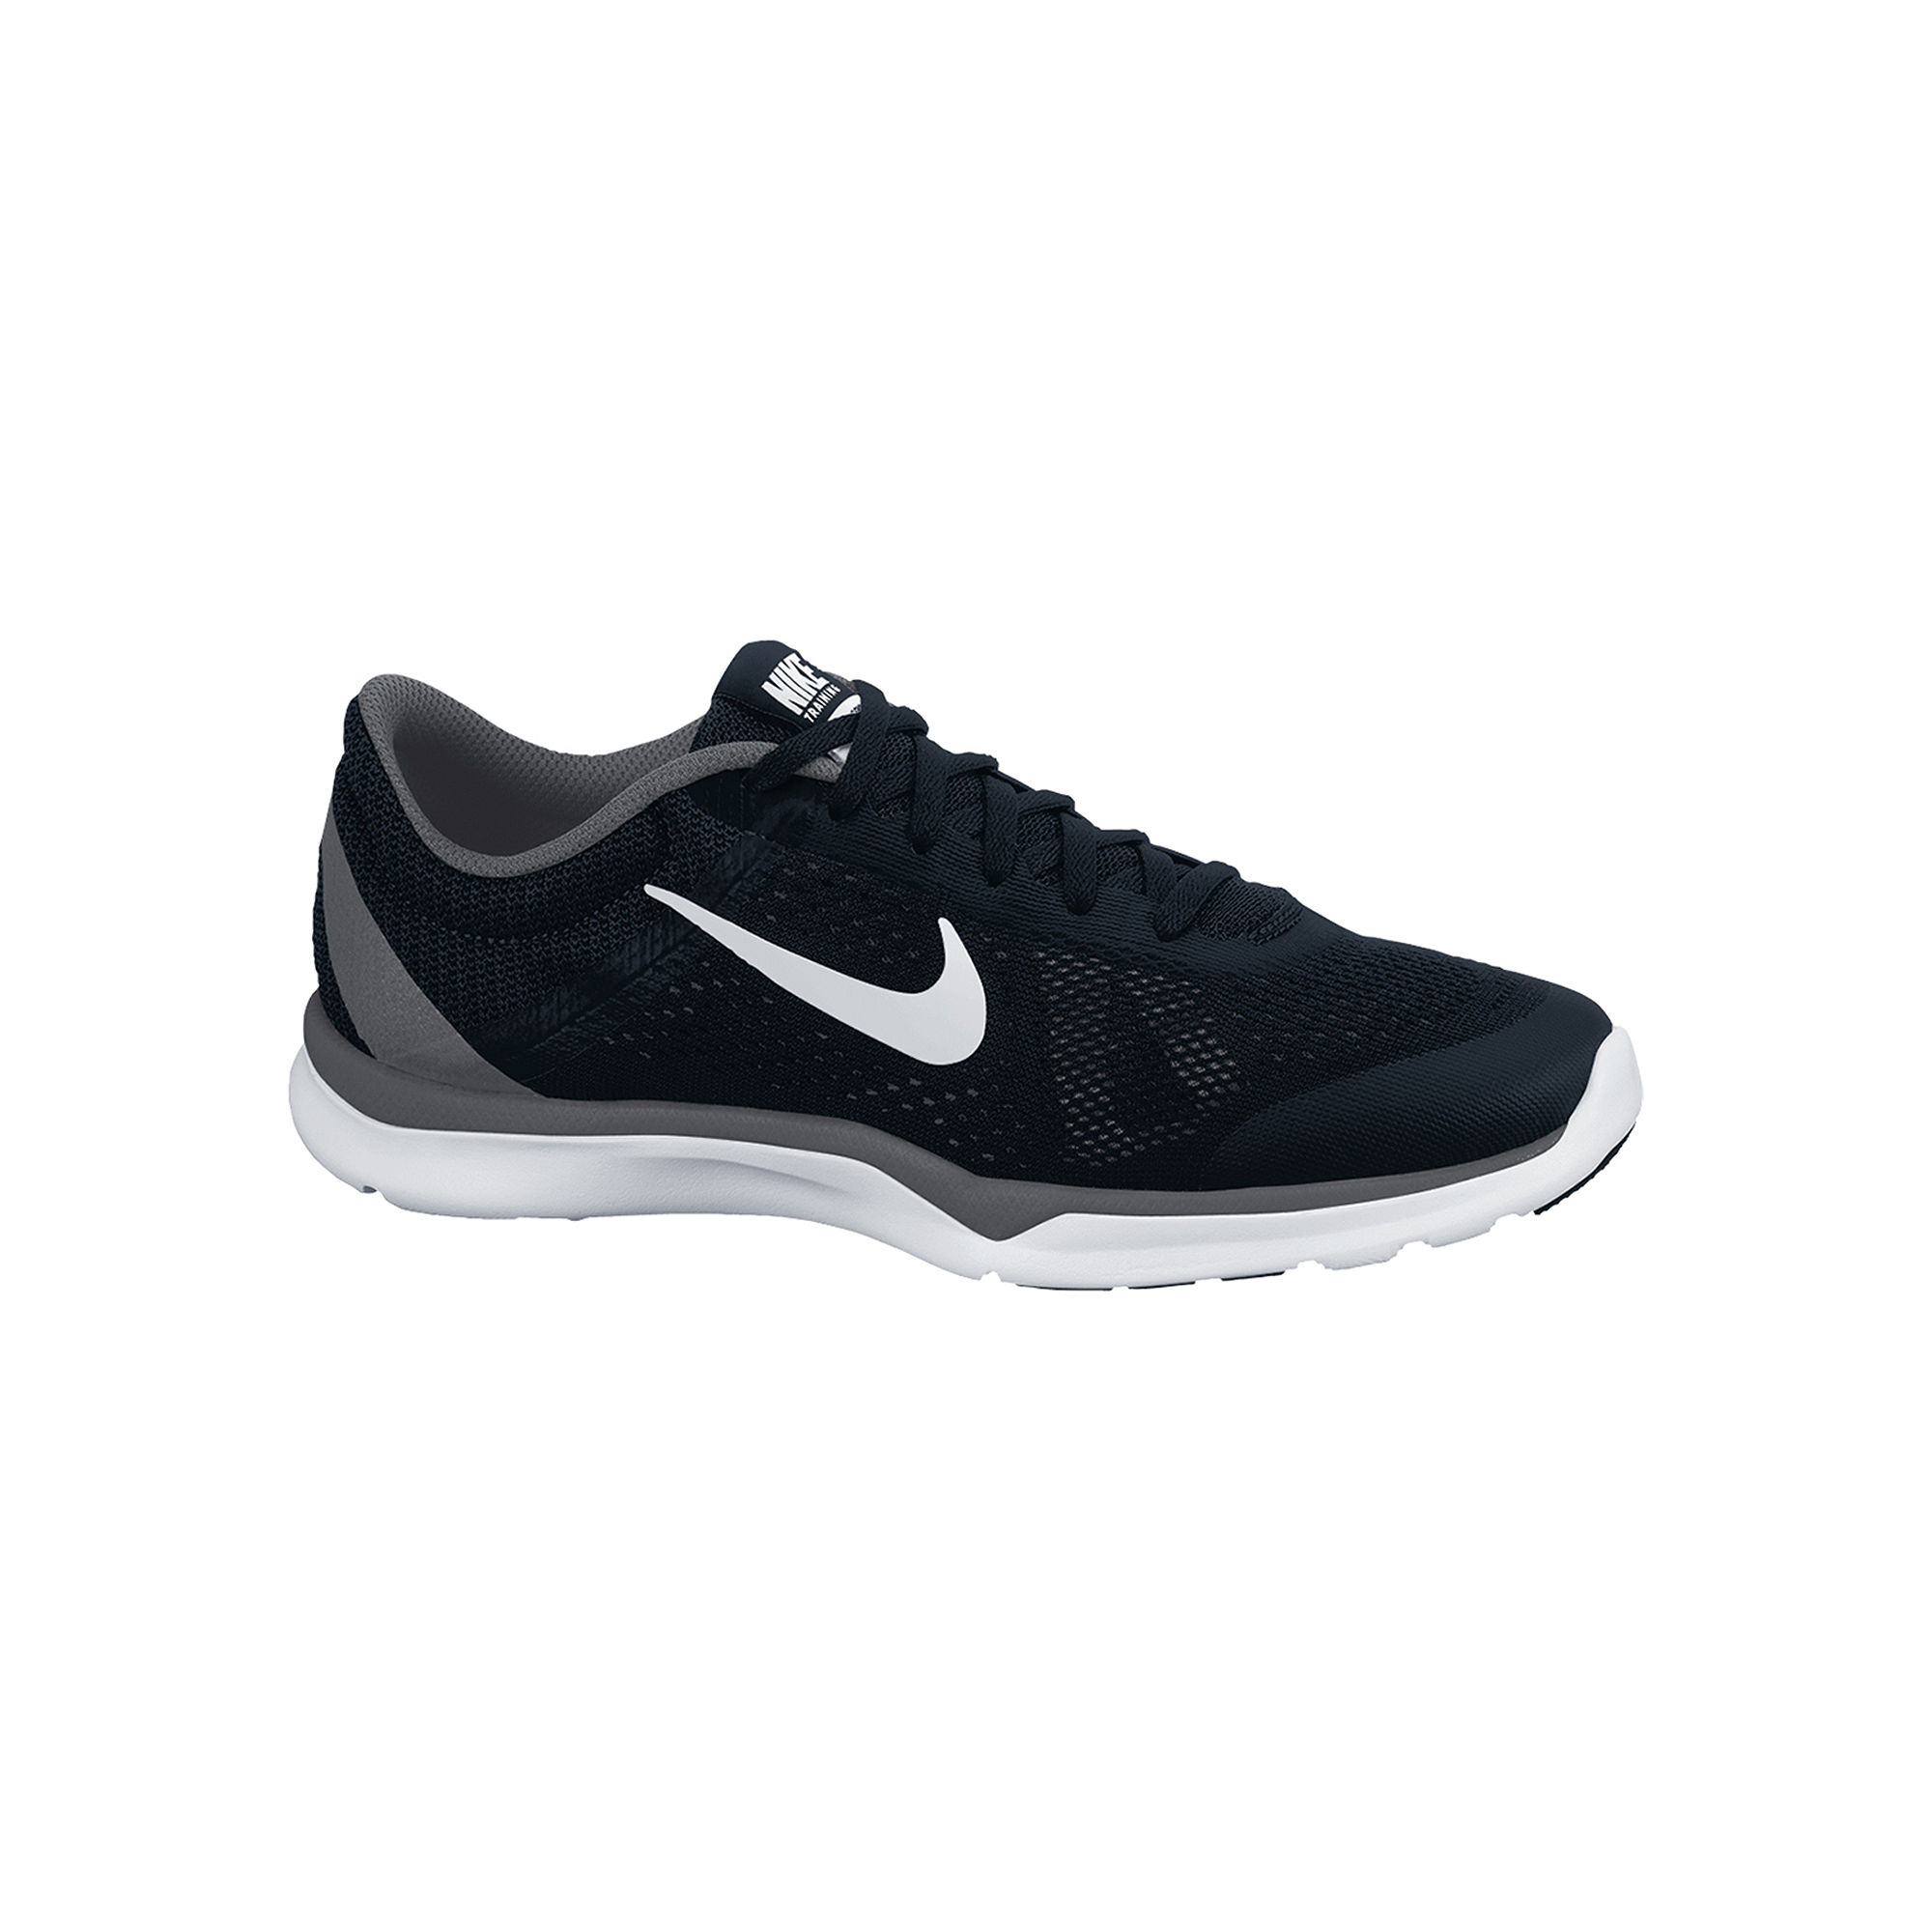 UPC 888410213810 product image for Nike Women's In-Season TR 5 Training  Shoes | upcitemdb